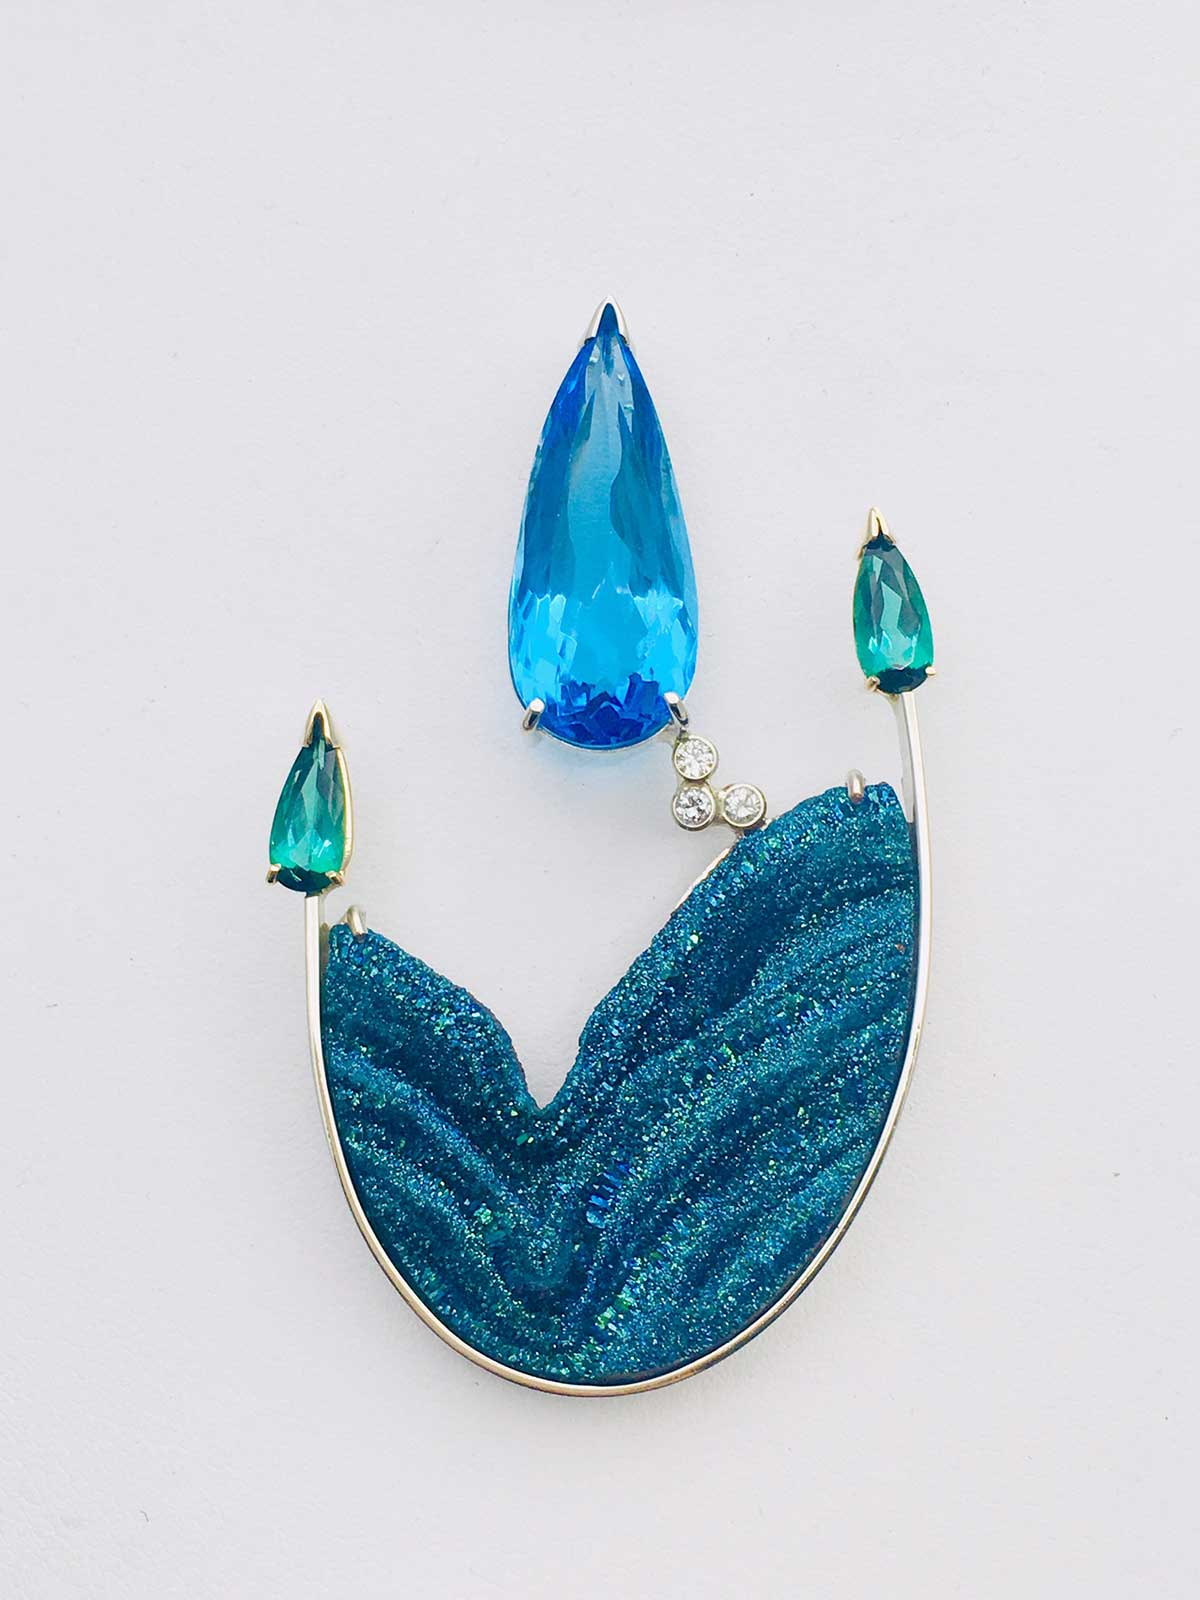 One-of-a-kind pendant set with a Titanium vapor coated, Blue Druzy and fabricated in 14k yellow gold. Also set with a large pear shape Blue Topaz, matched Green Tourmalines and Diamond accents